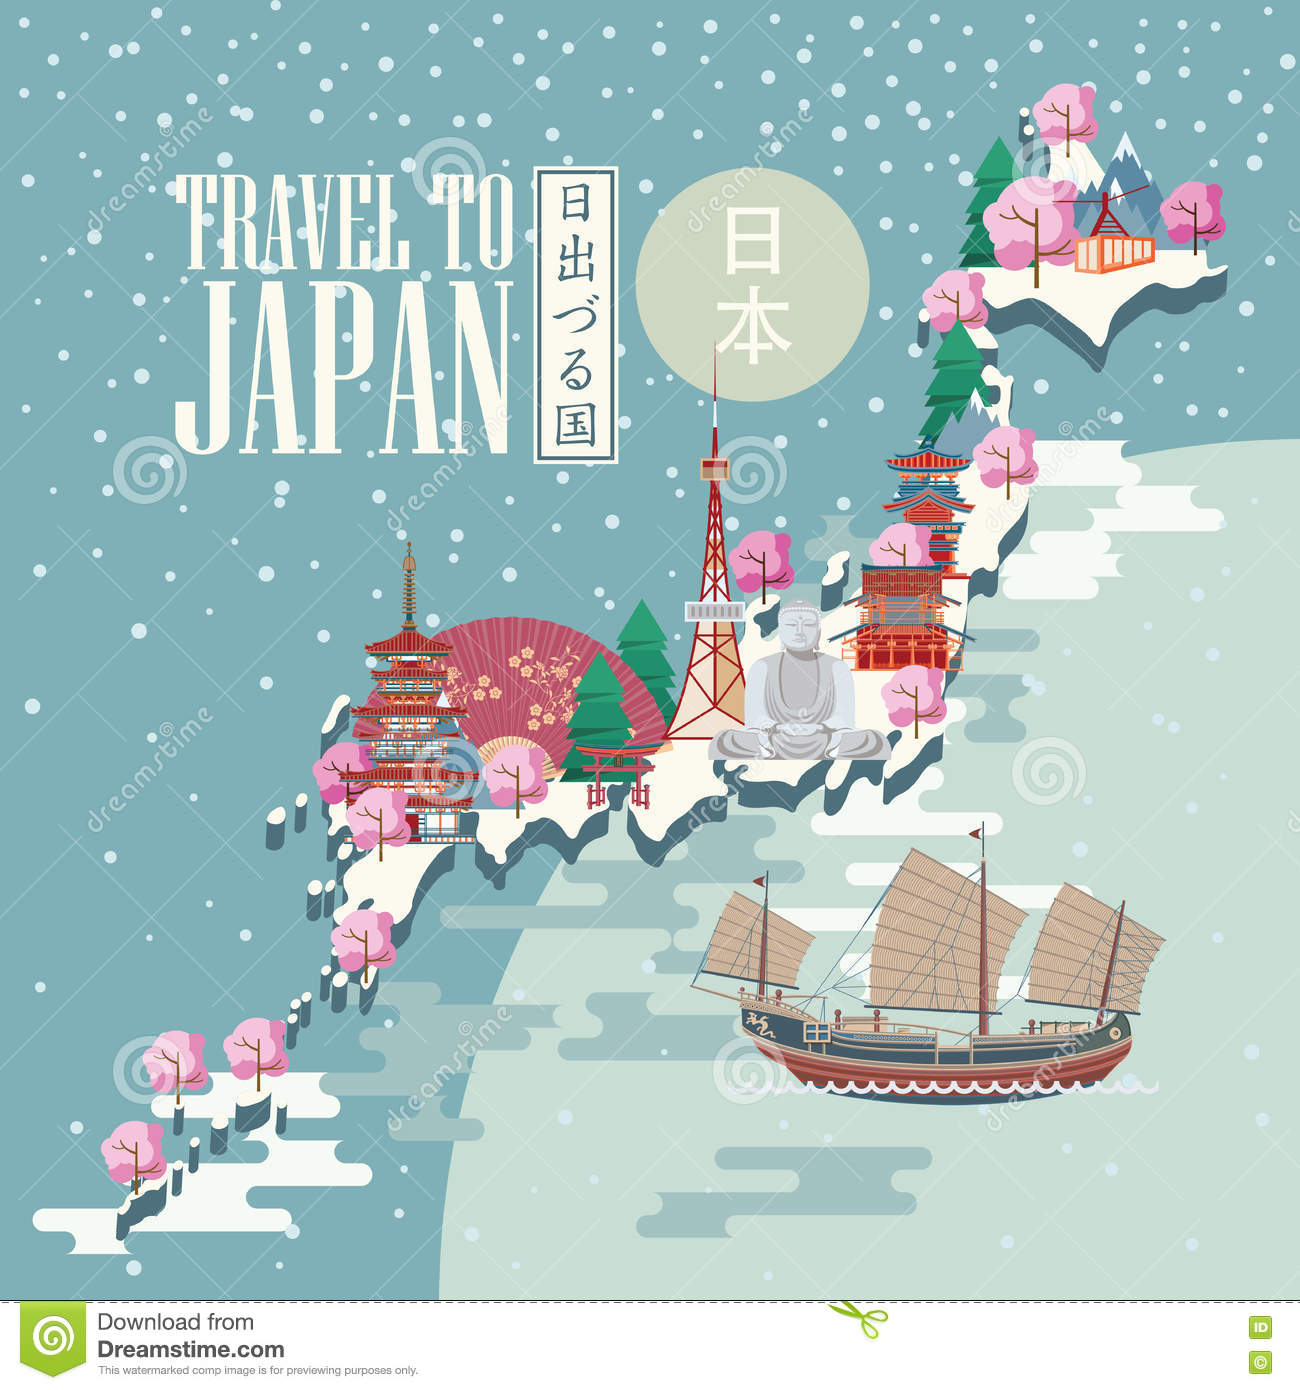 Japan Travel Poster With Snow Map Travel To Japan Stock Vector - Japan map poster